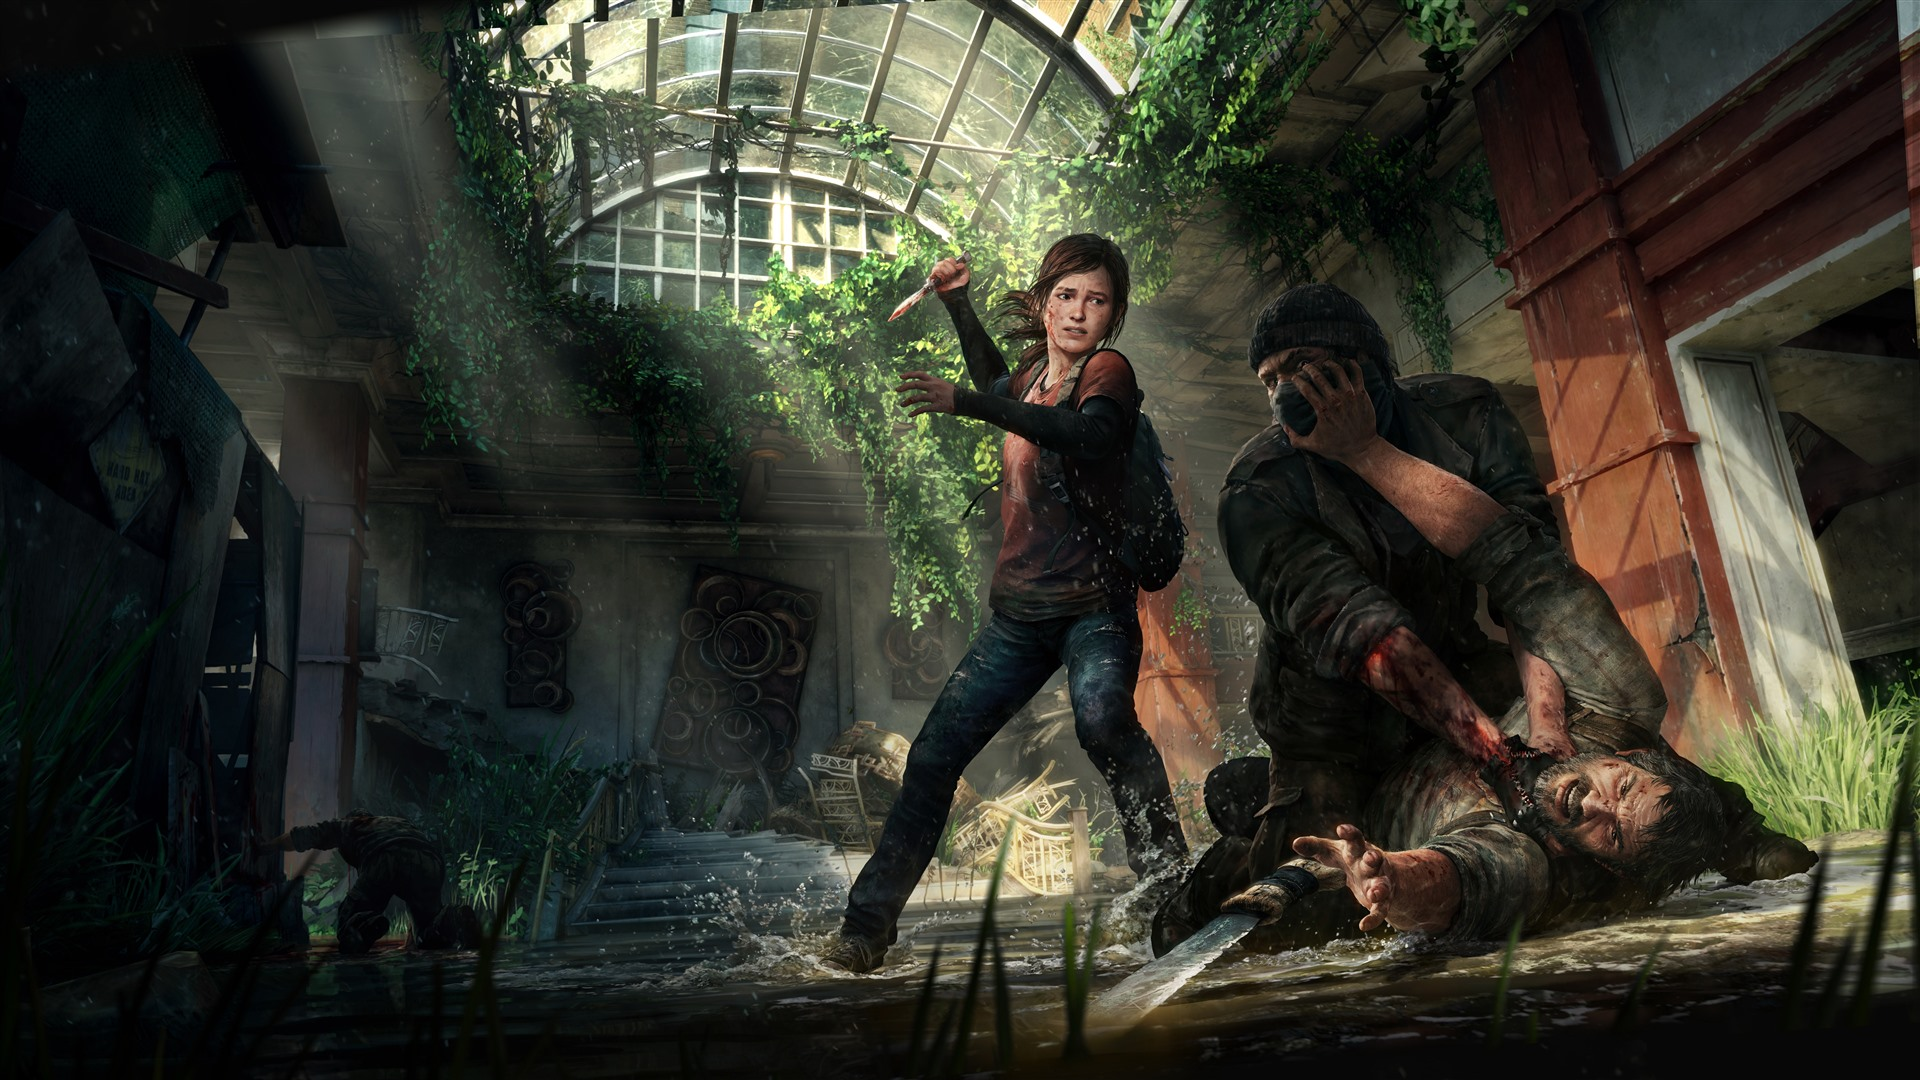 Wallpaper The Last Of Us Ellie Game 7680x4320 Uhd 8k